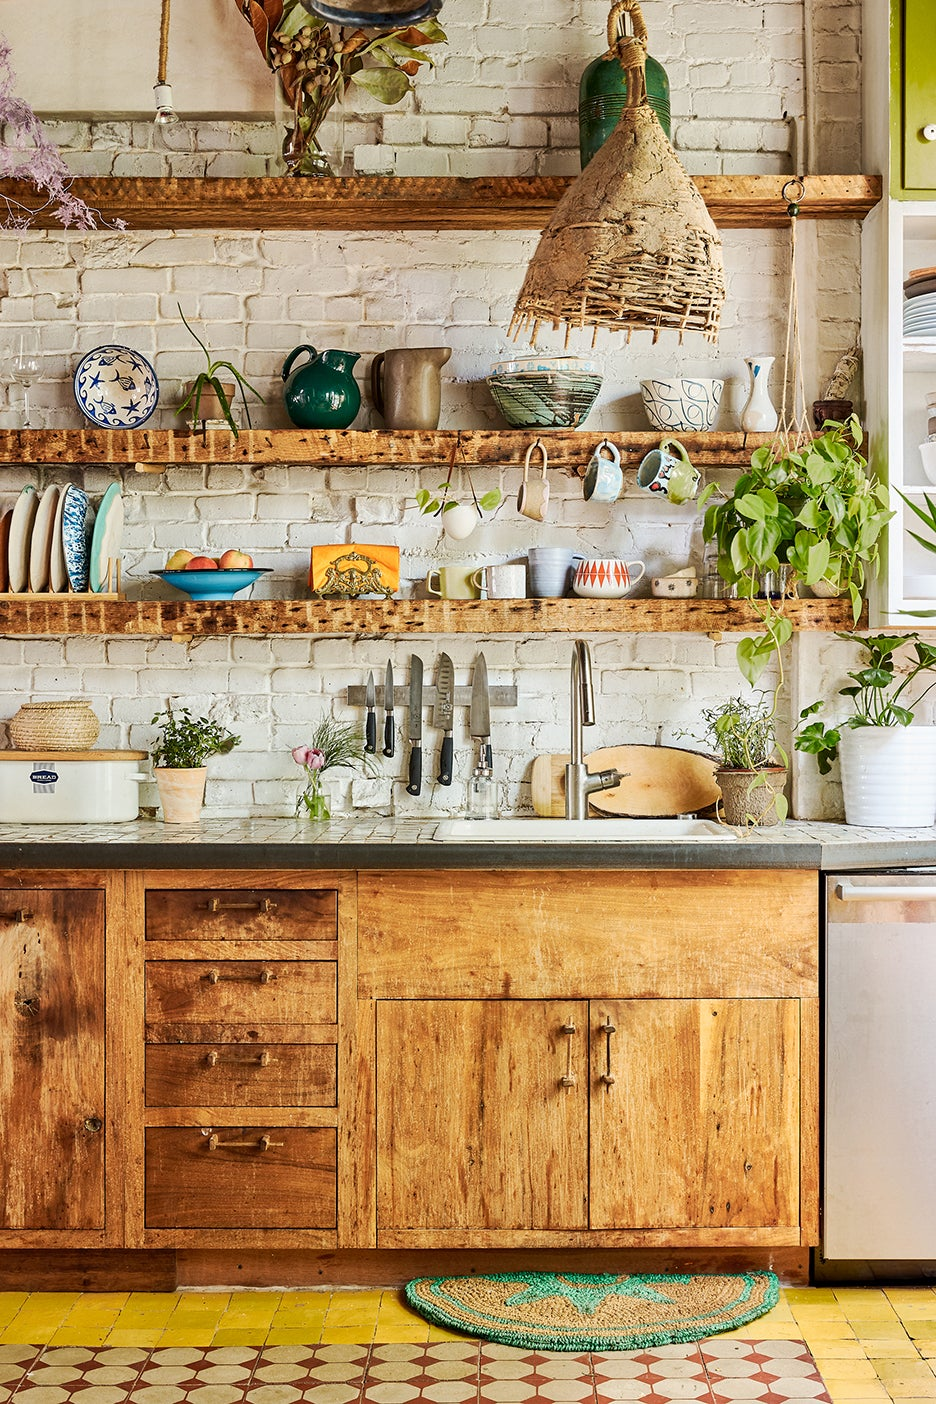 00-FEATURE-one-wall-kitchen-cabinets-domino